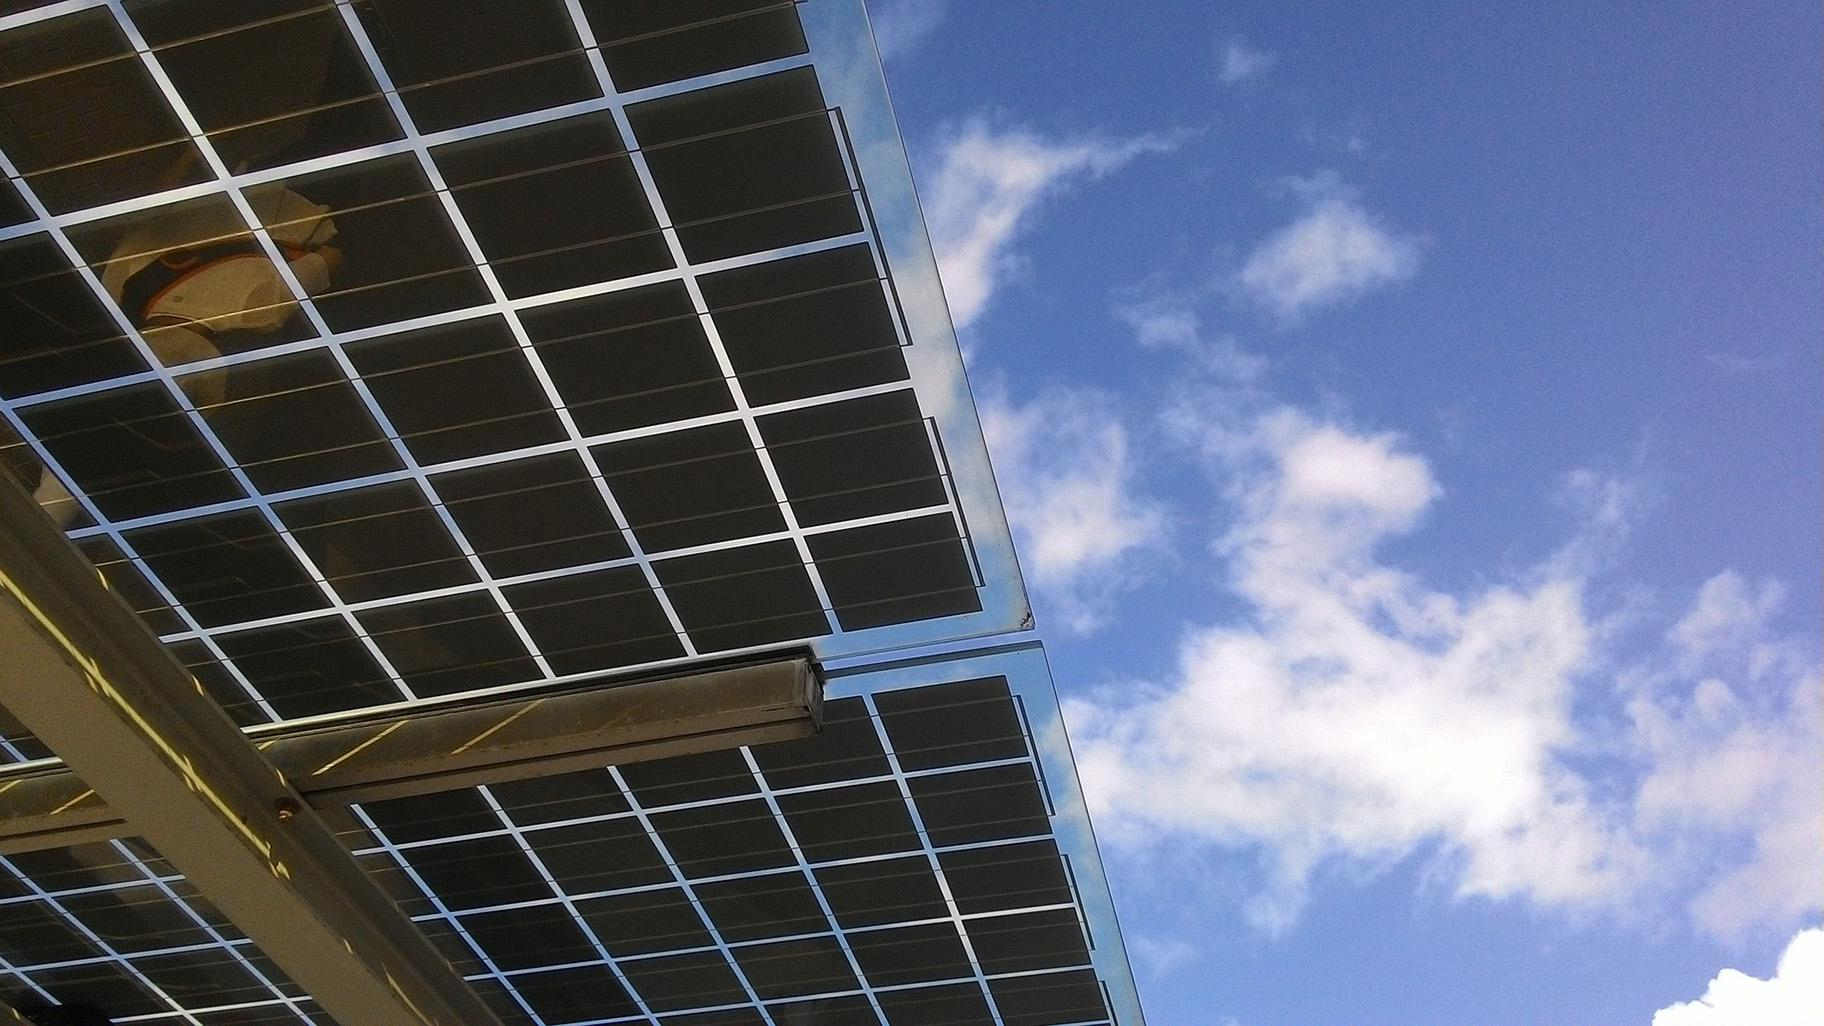 New Initiative Aims to Bring Solar Energy, Jobs to Chicago's